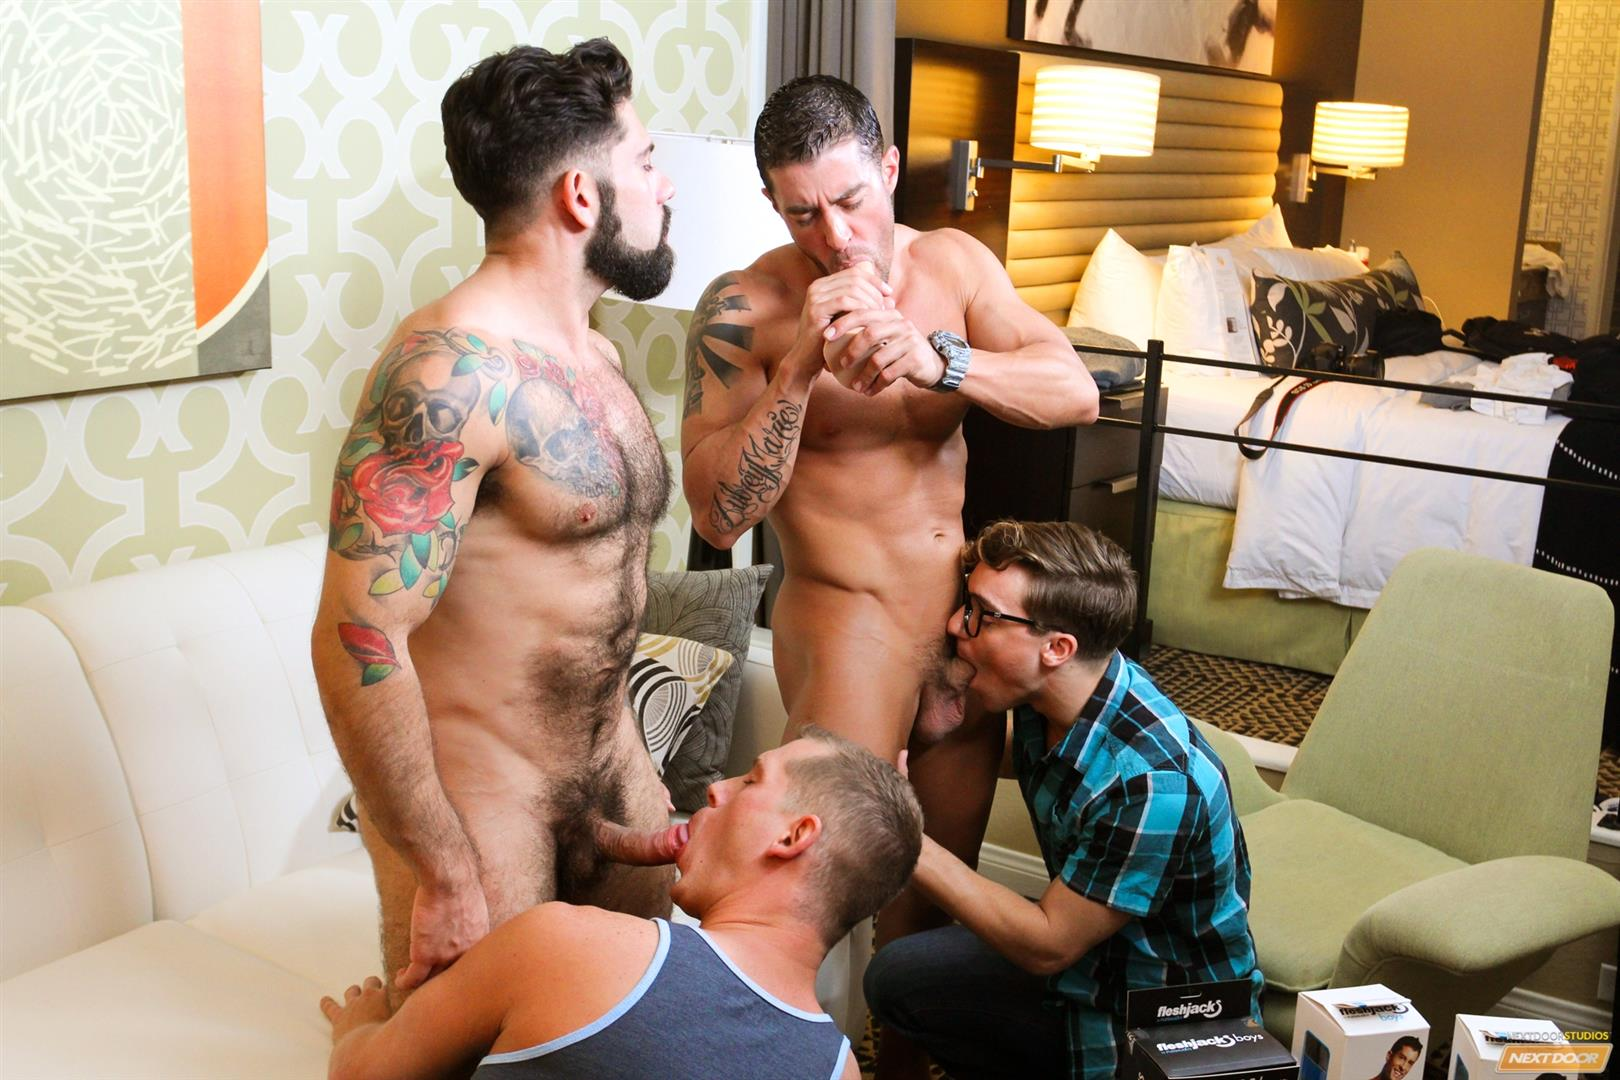 Cody-Cummings-and-Tyler-Morgan-and-Alessandro-Del-Torro-Cock-Sucking-Lessons-Amateur-Gay-Porn-12 Cody Cummings Gives The Boys Cock Sucking Lessons